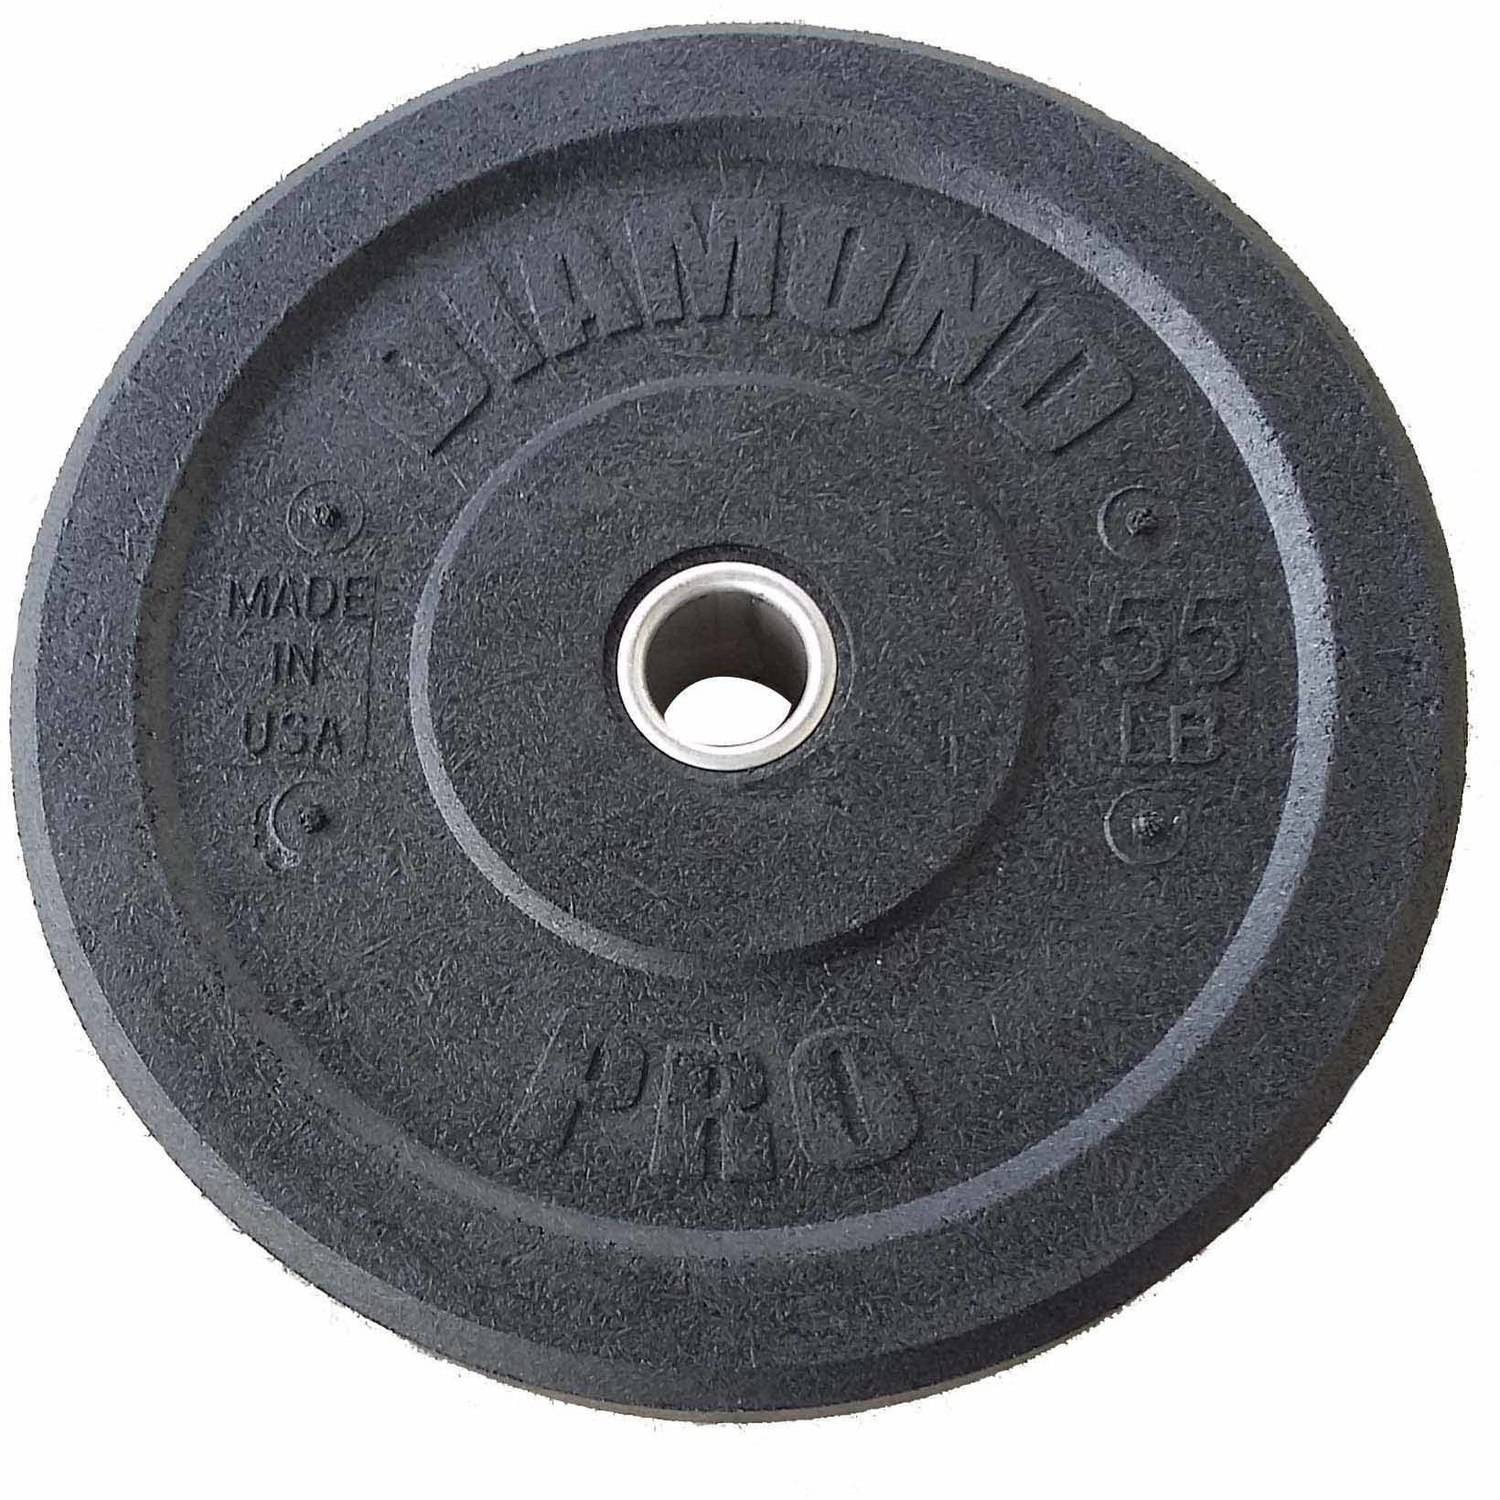 Diamond Pro 55 lb Crumb Bumper Plate Single